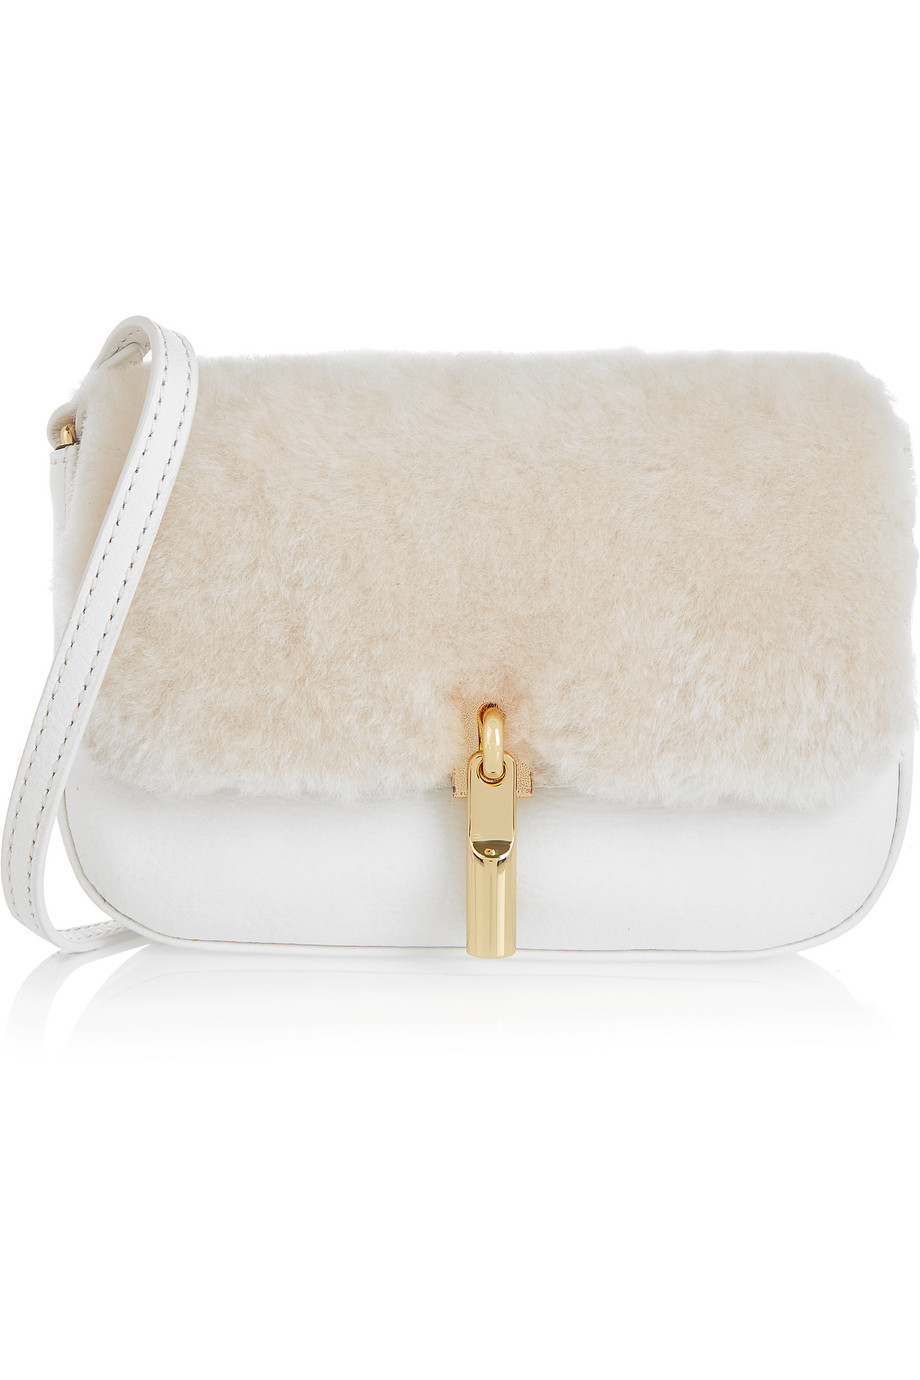 Elizabeth and James Cynnie Nano Shearling and Textured-Leather Shoulder Bag, White, Women's, Size: One Size